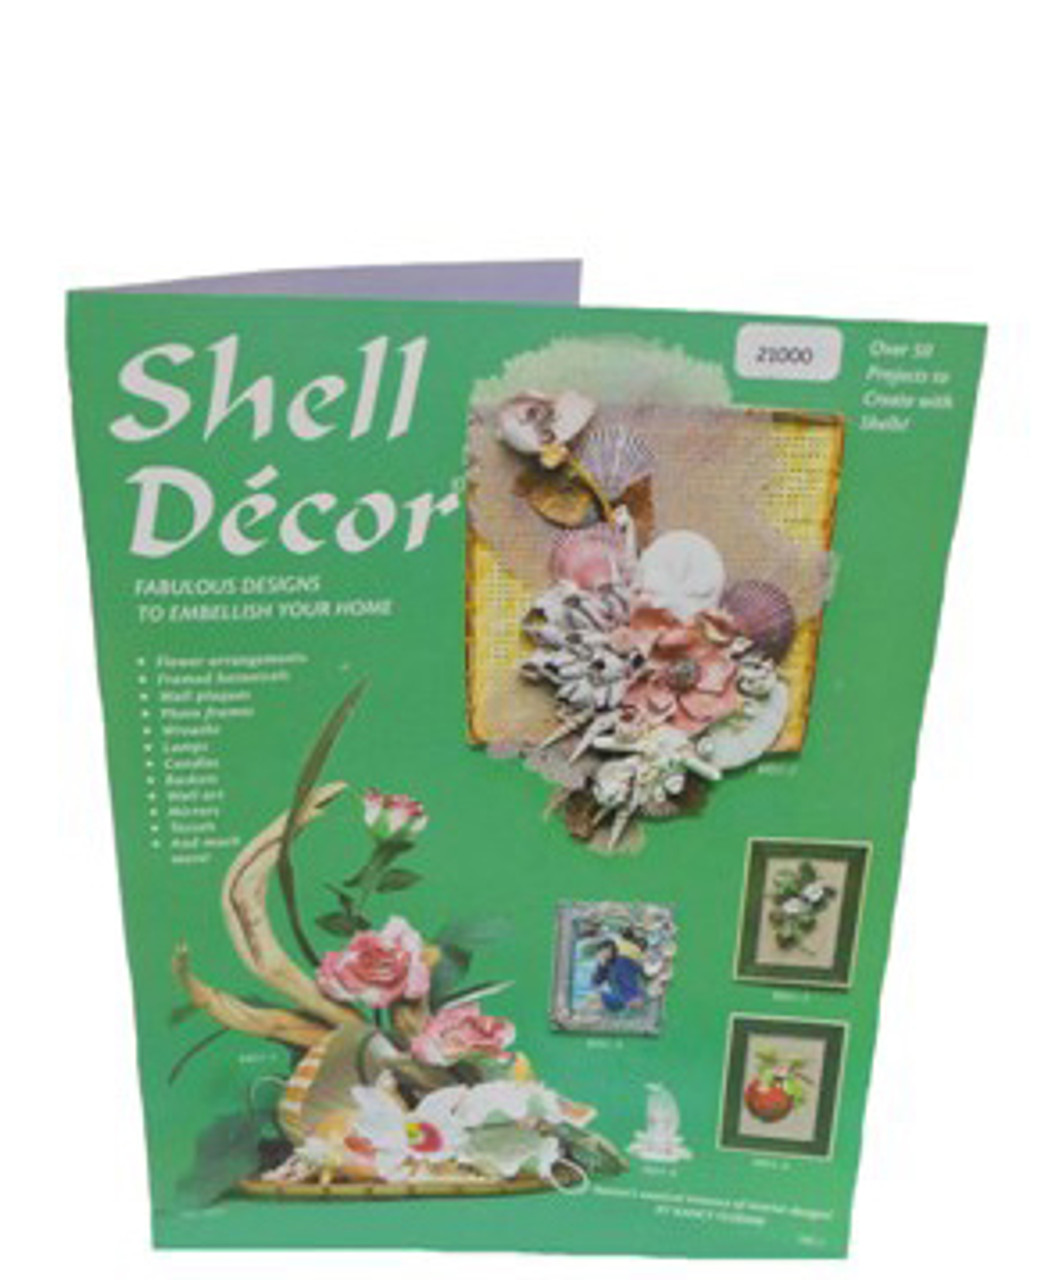 Shell Decor Craft Book